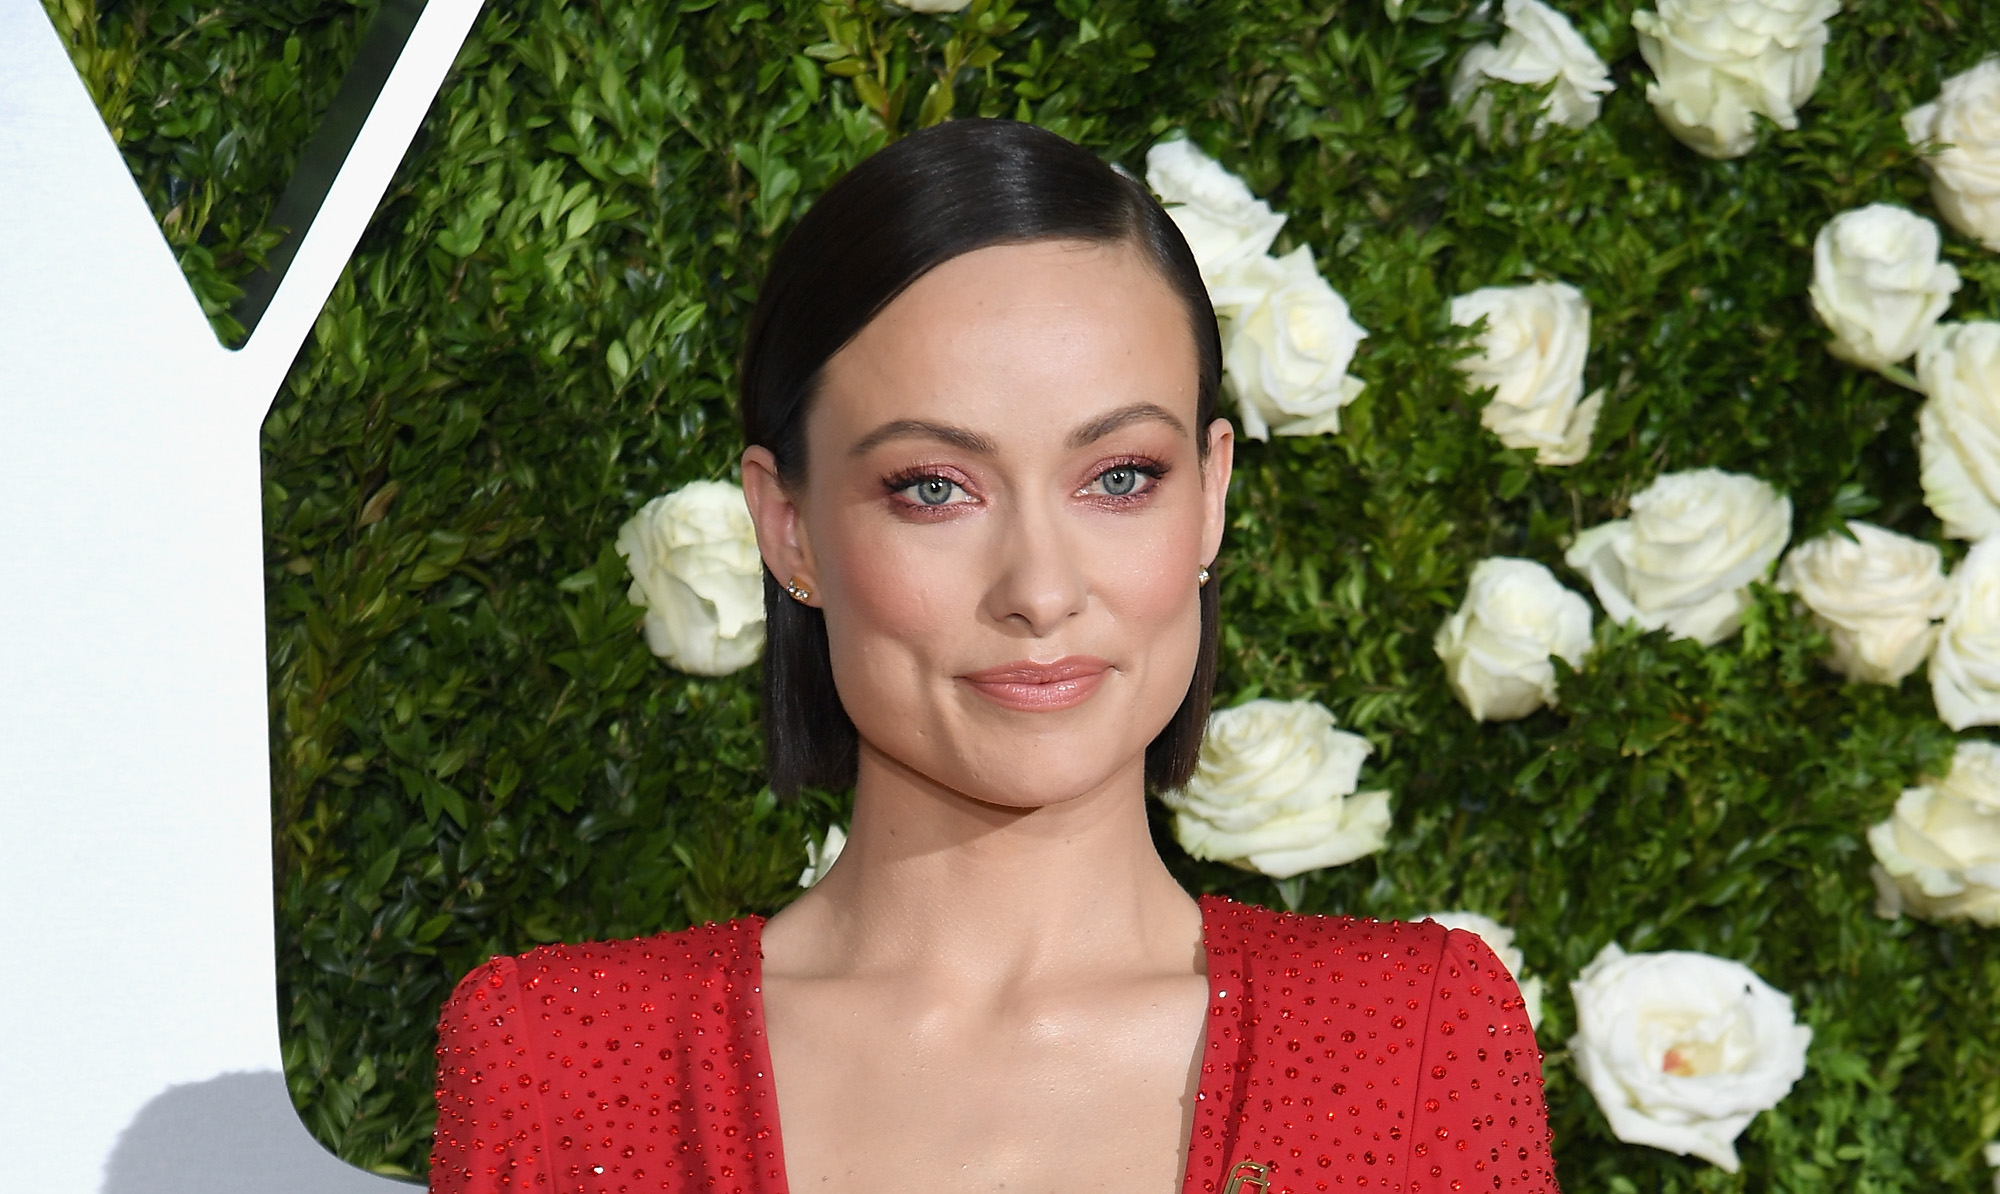 To see Olivia Wilde's homage to Planned Parenthood, you'll need to do a double take